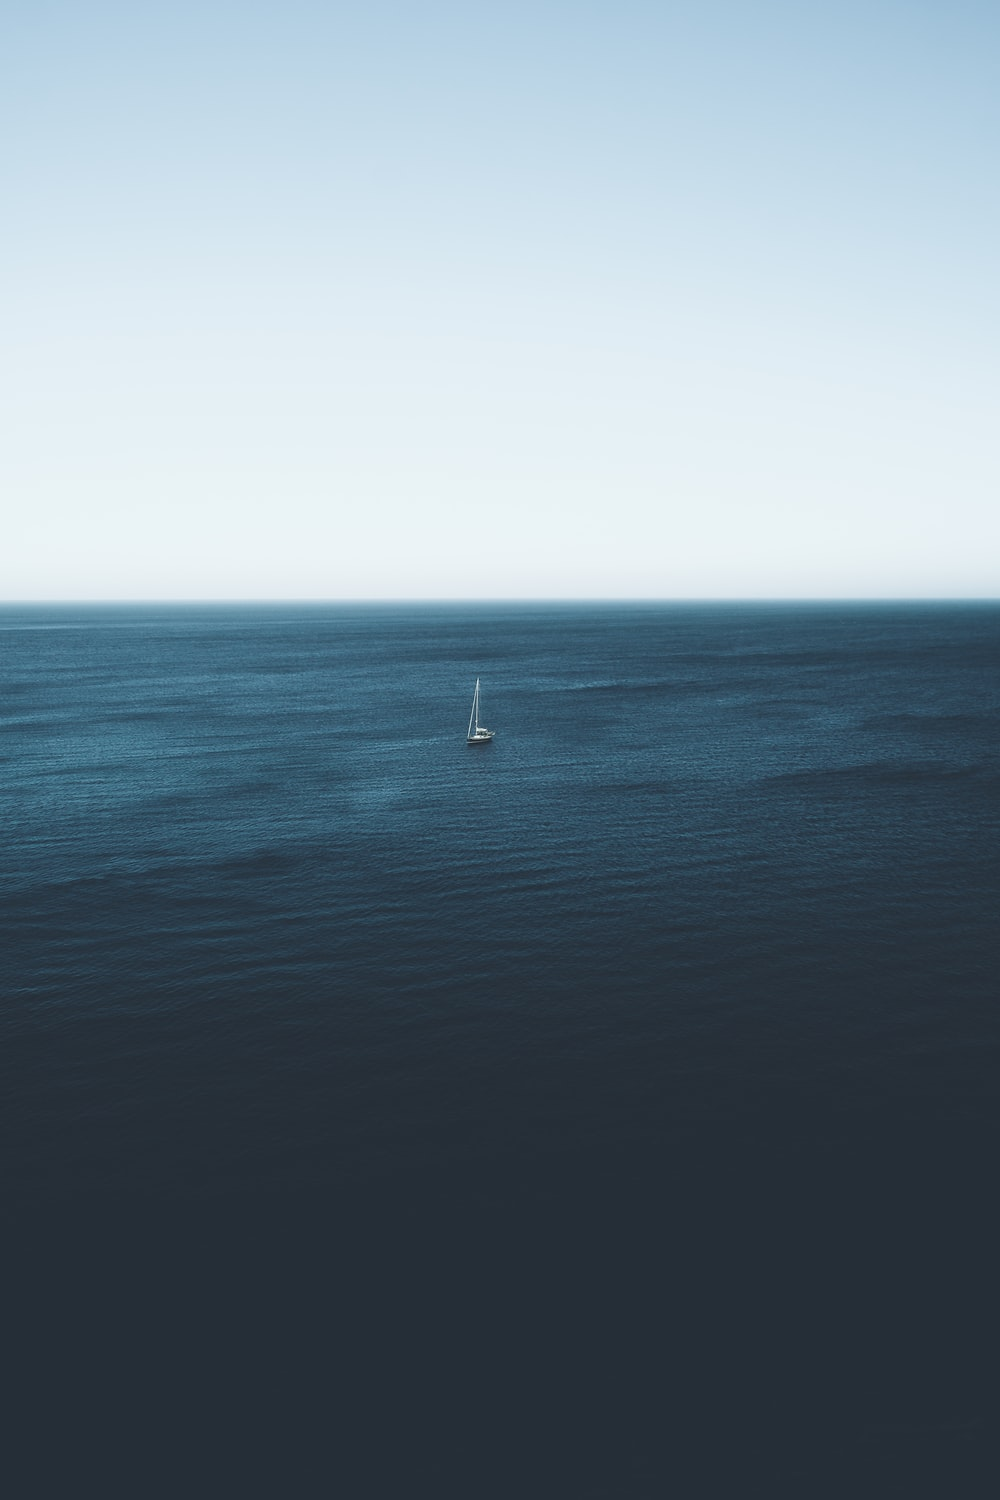 sailboat on body of water during daytime